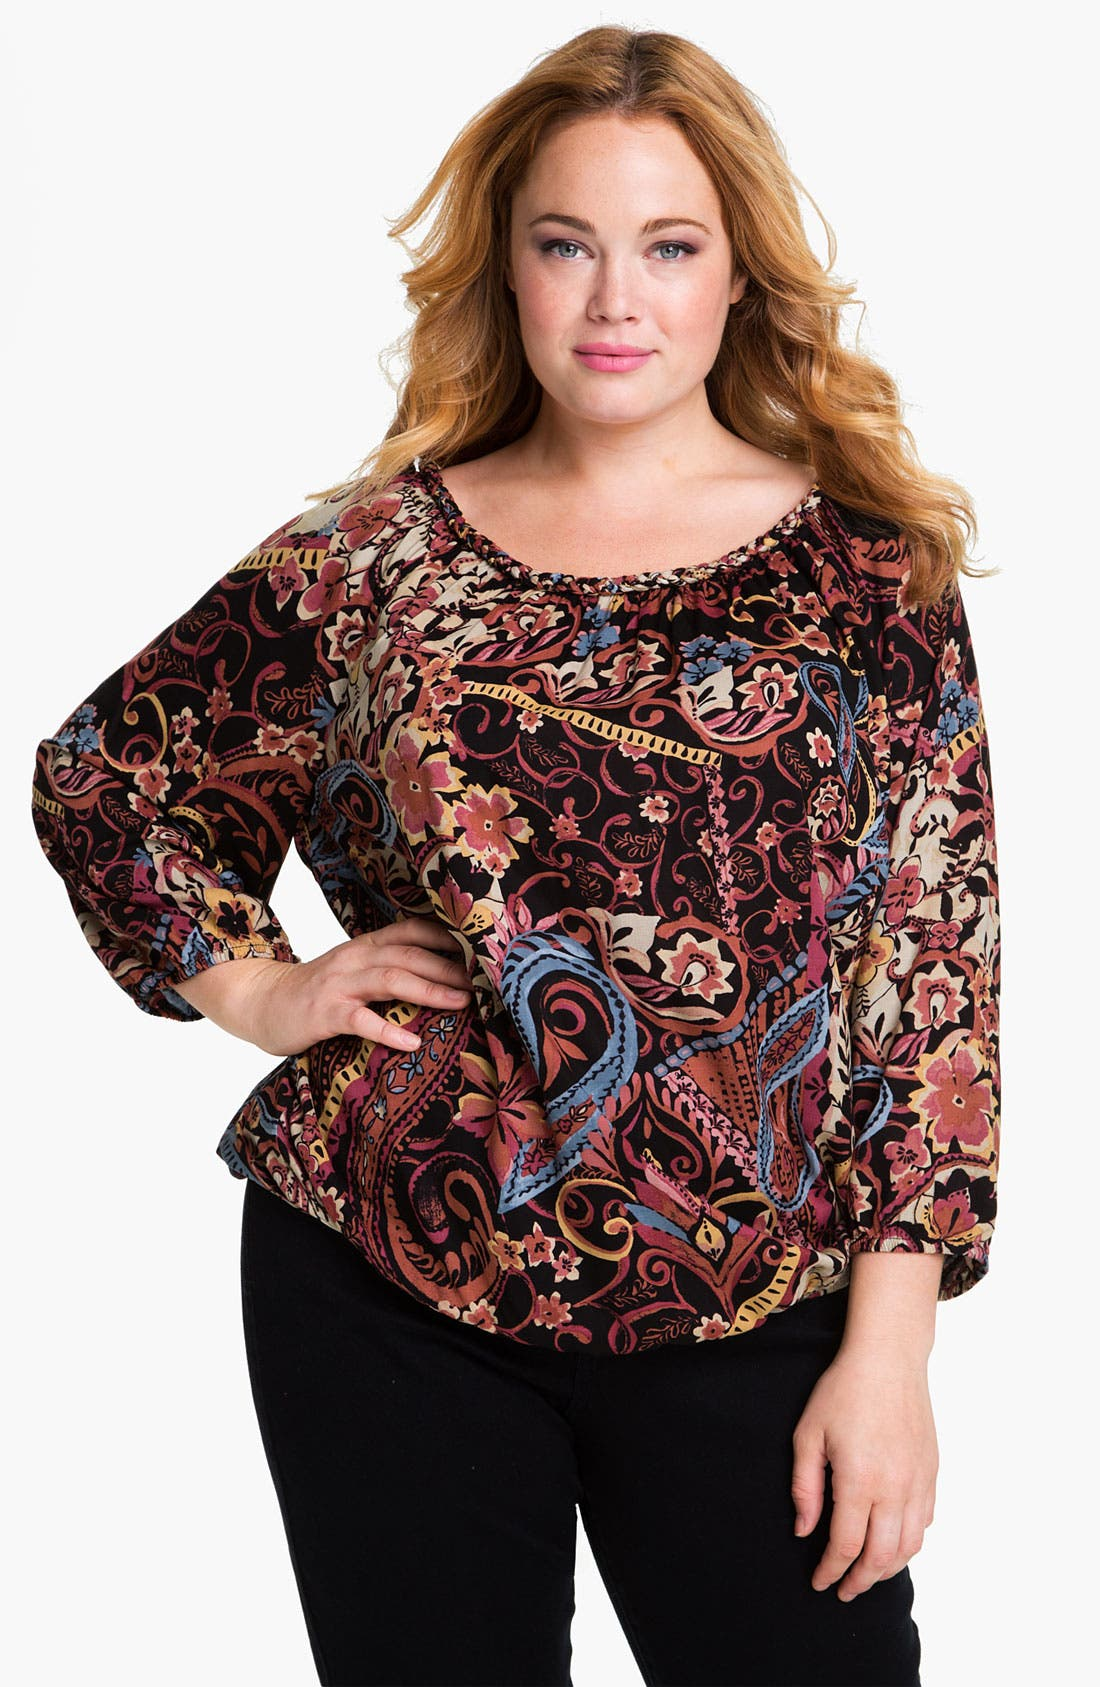 Alternate Image 1 Selected - Lucky Brand 'McGraw Carnival' Top (Plus)